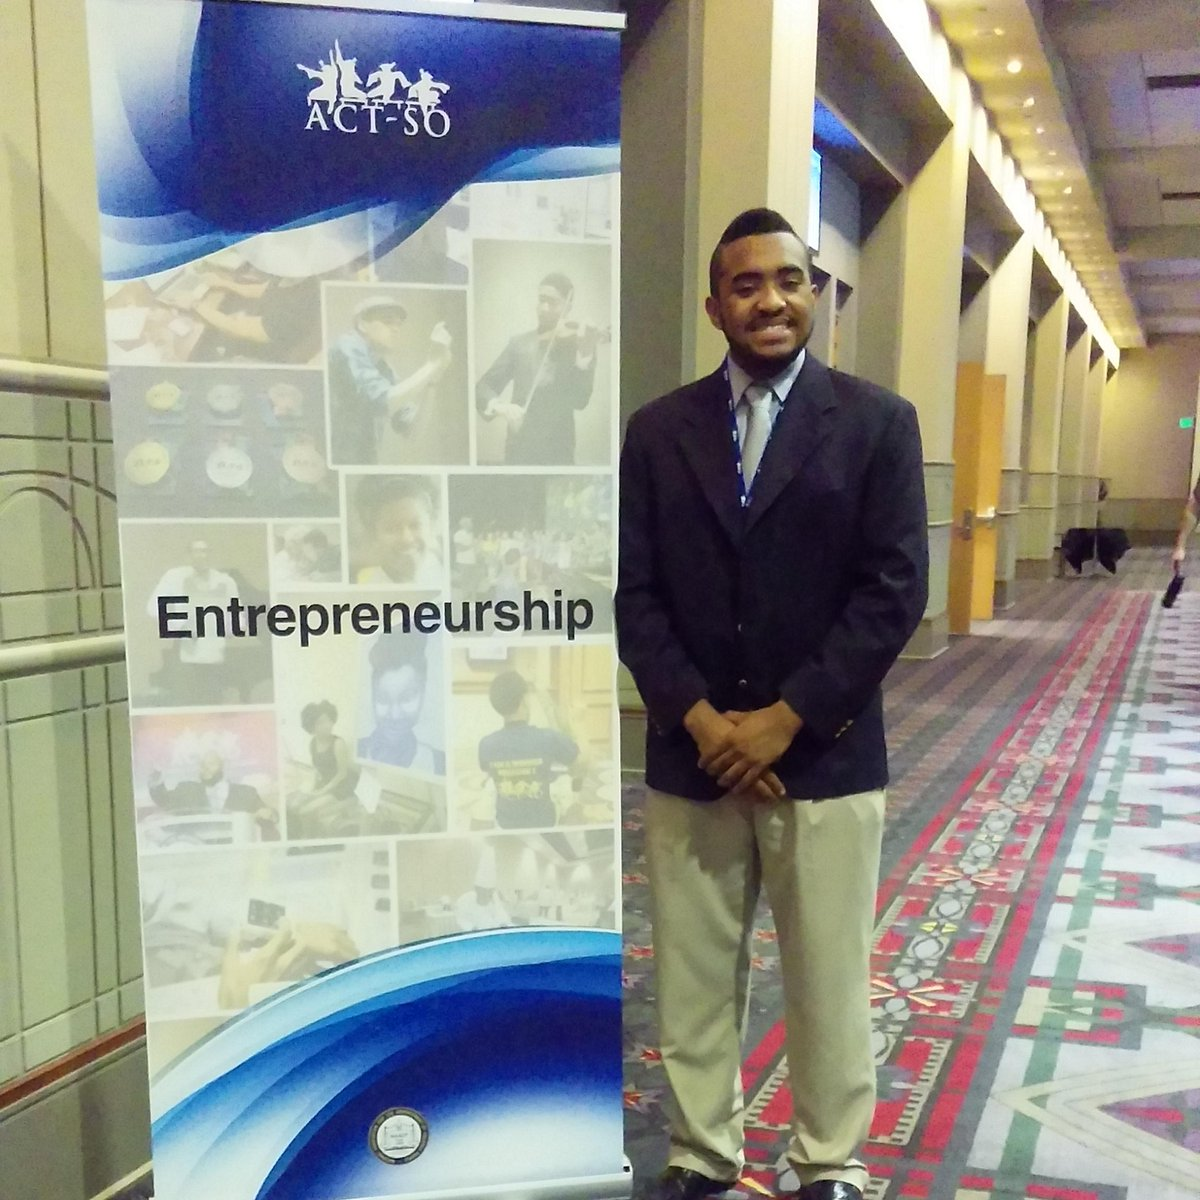 Thank The Lord! We are so proud of our Silver Medalist! Our Entrepreneur Mr. Eric Witherspoon! #ACTSO #saactso2015 http://t.co/GRr5wCAr4Y